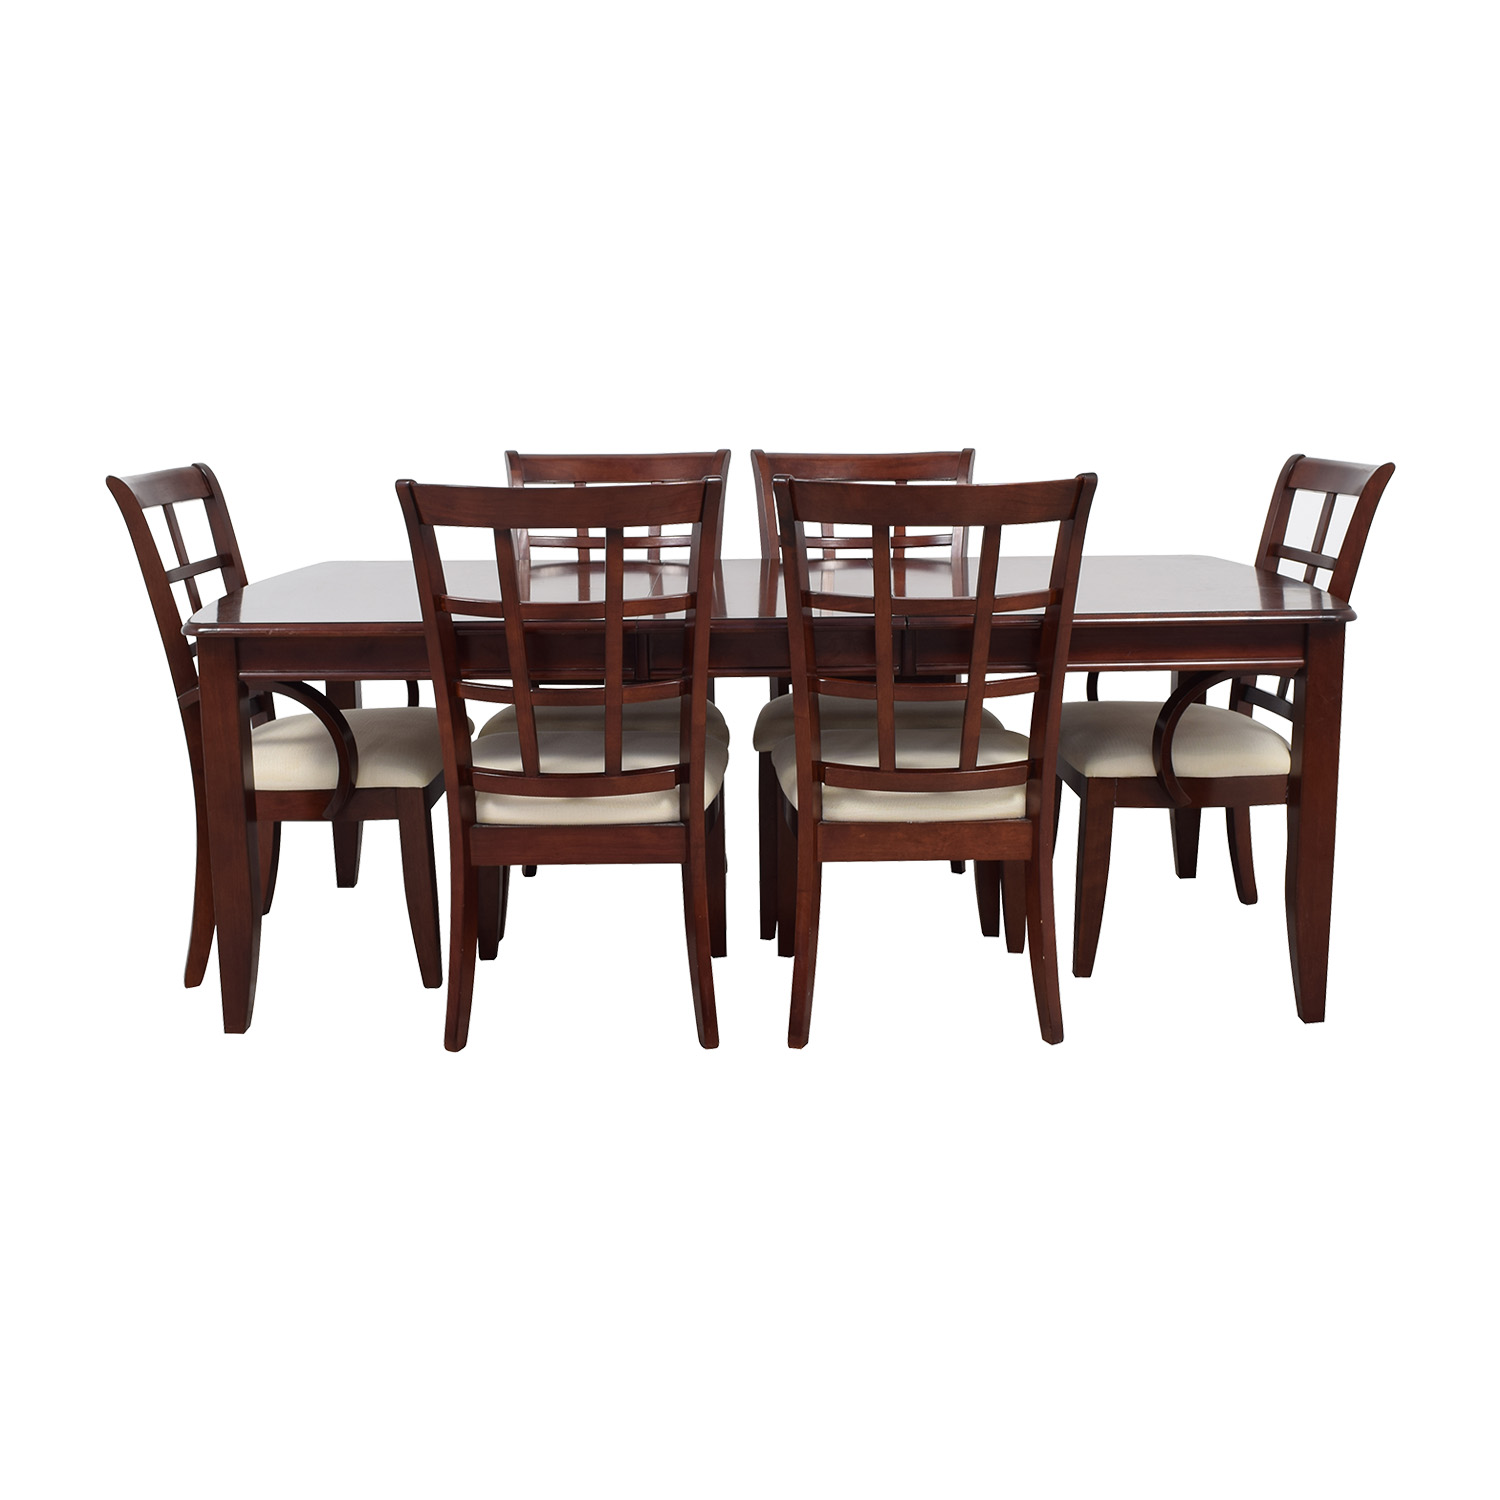 Klaussner International Extendable Leaf Wood Dining Set Klaussner International